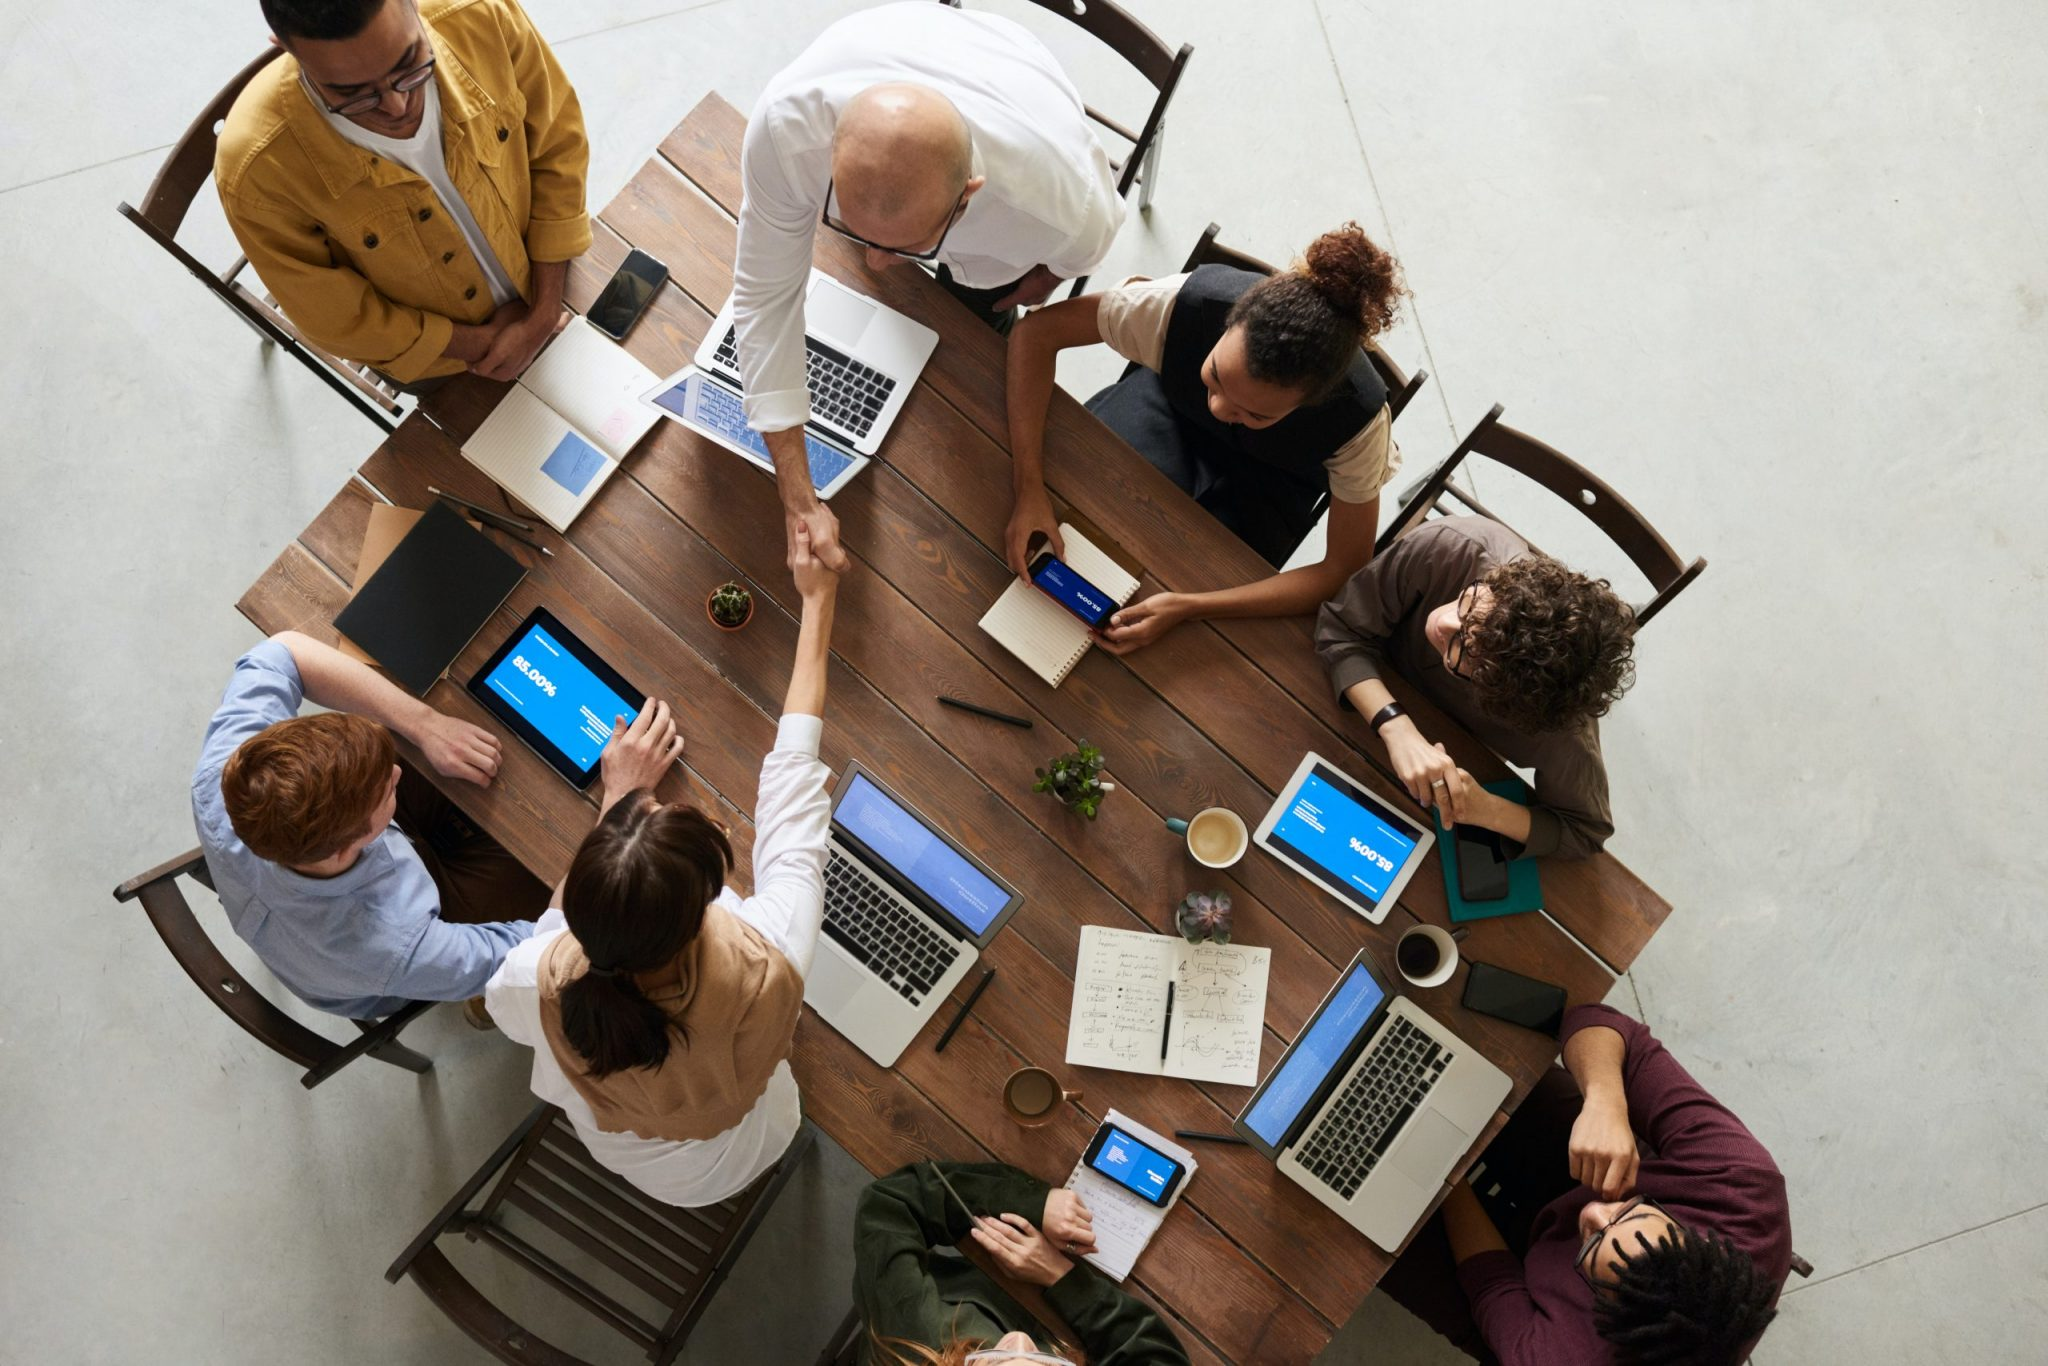 people in a meeting with different devices